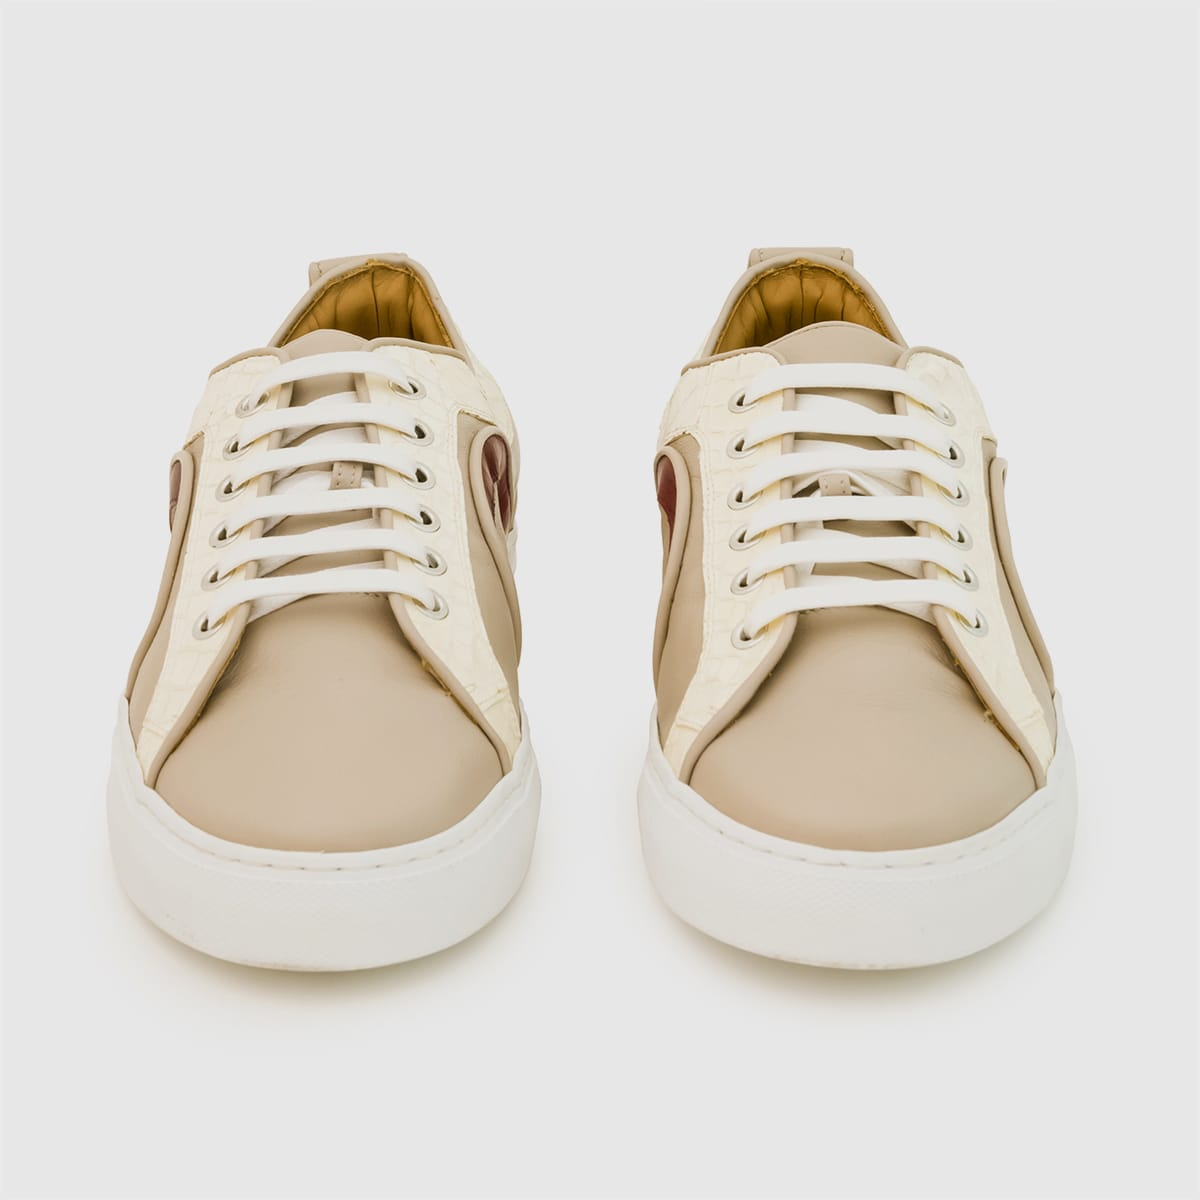 Ivory hand-painted calfskin Sneakers